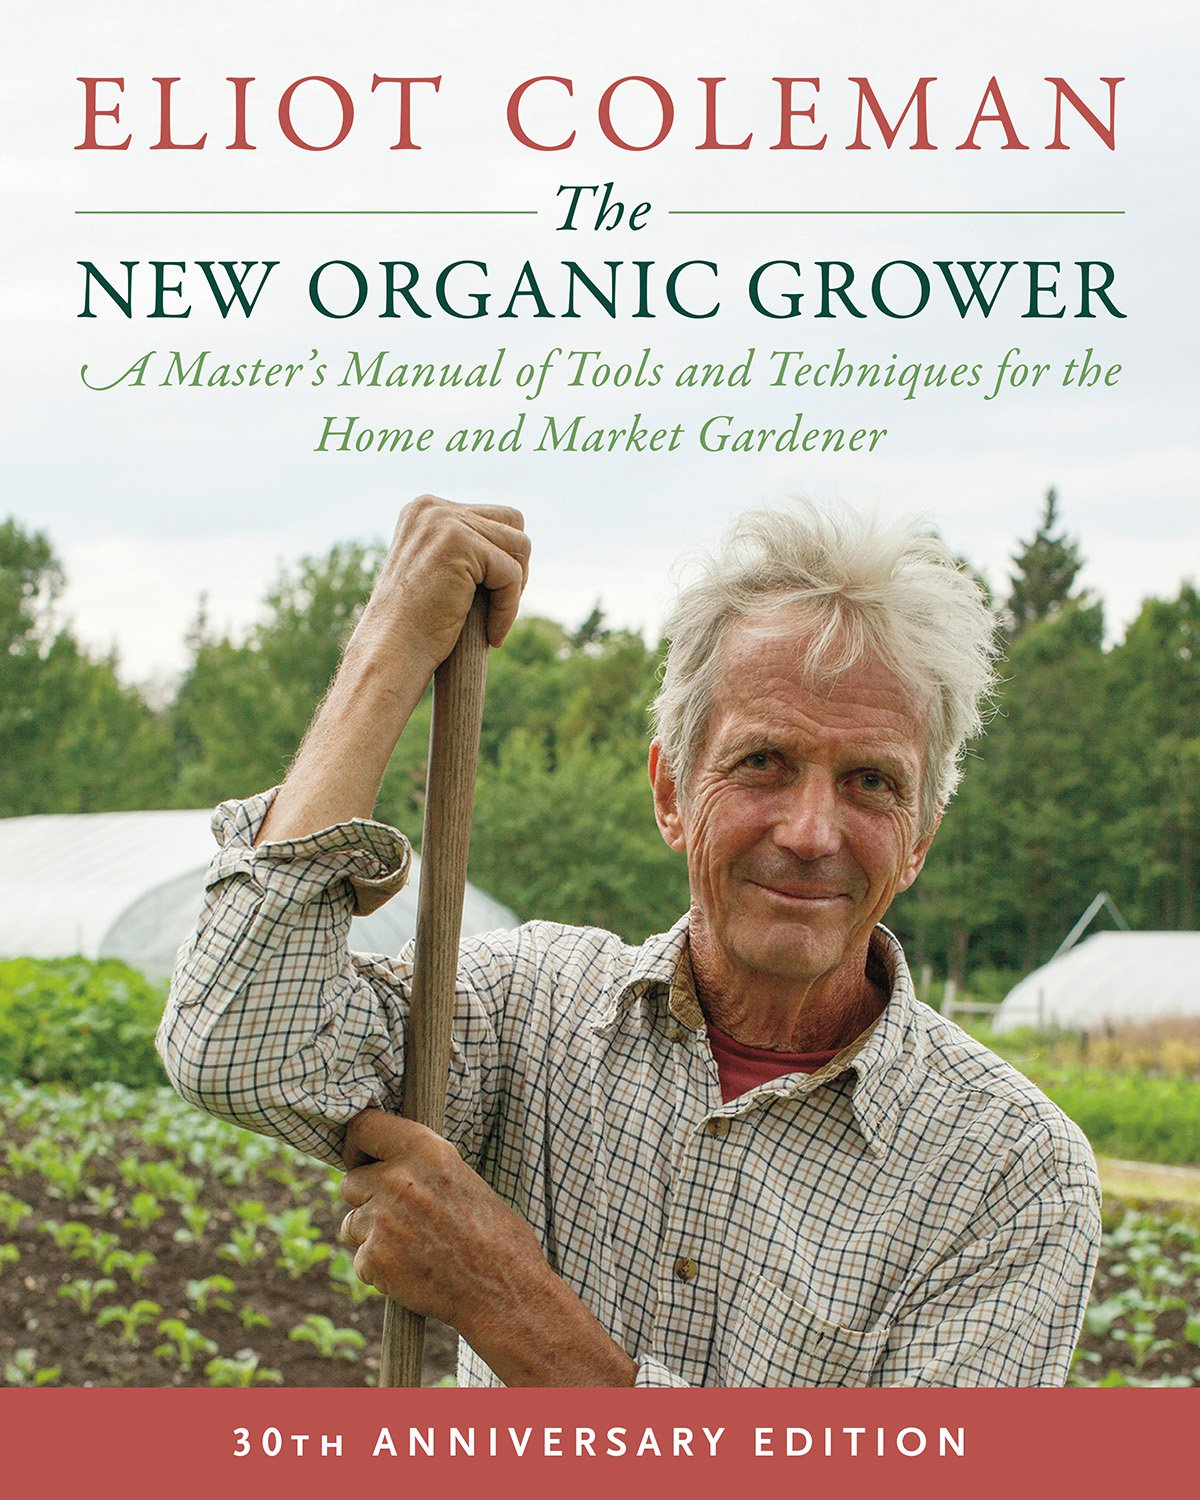 The new organic grower : a master's manual of tools and                 techniques for the home and market gardener / Eliot Coleman ;                 photographs by Barbara Damrosch.